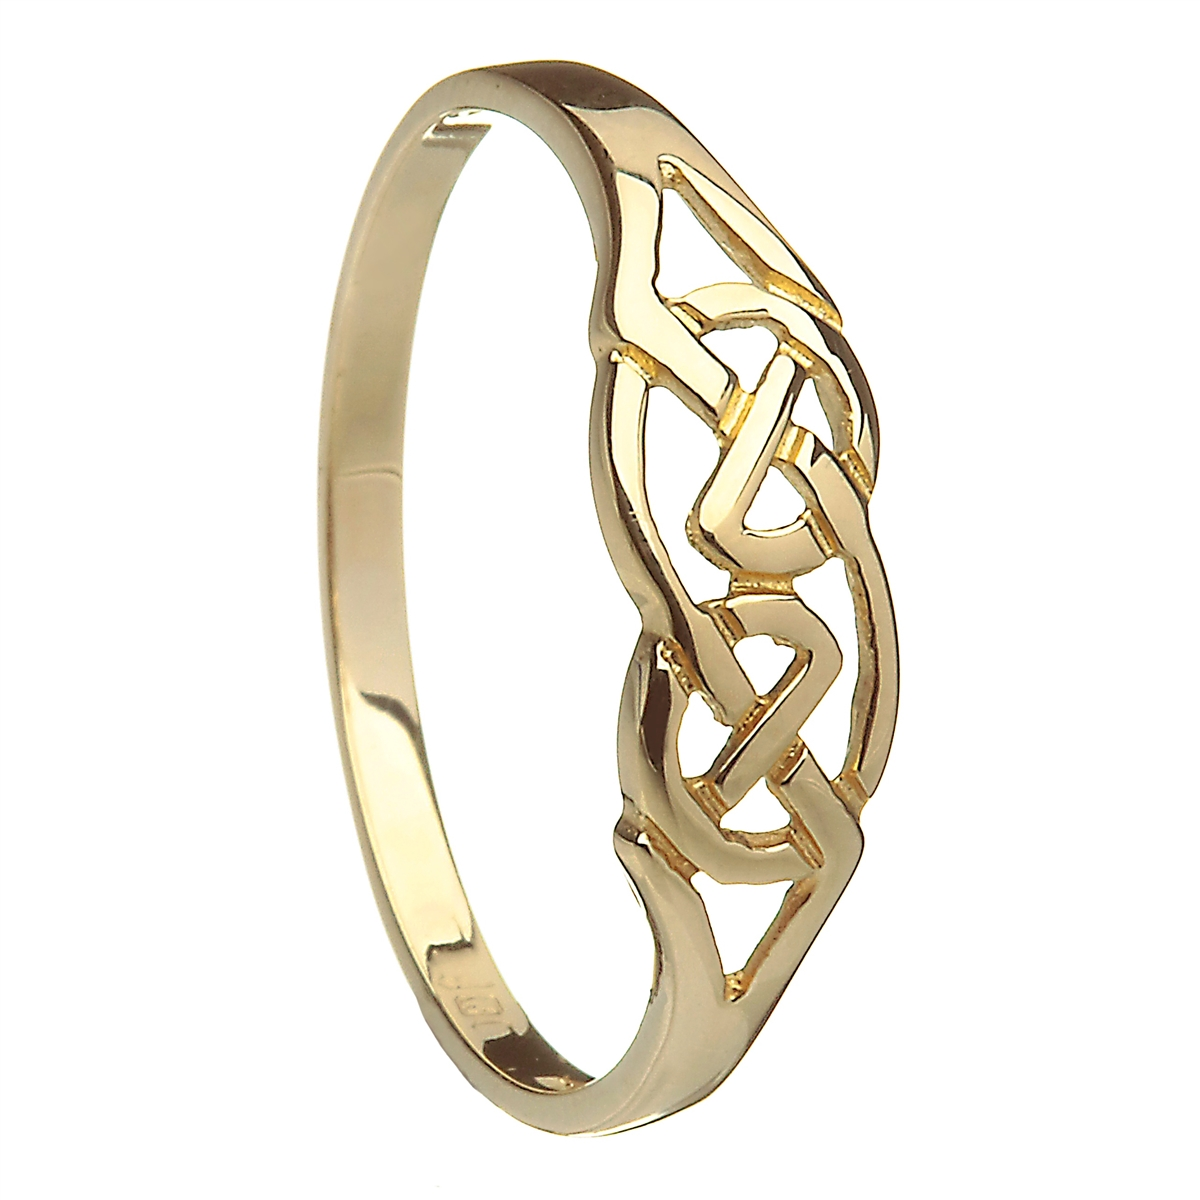 10k Yellow Gold Celtic Knot Ring 5mm